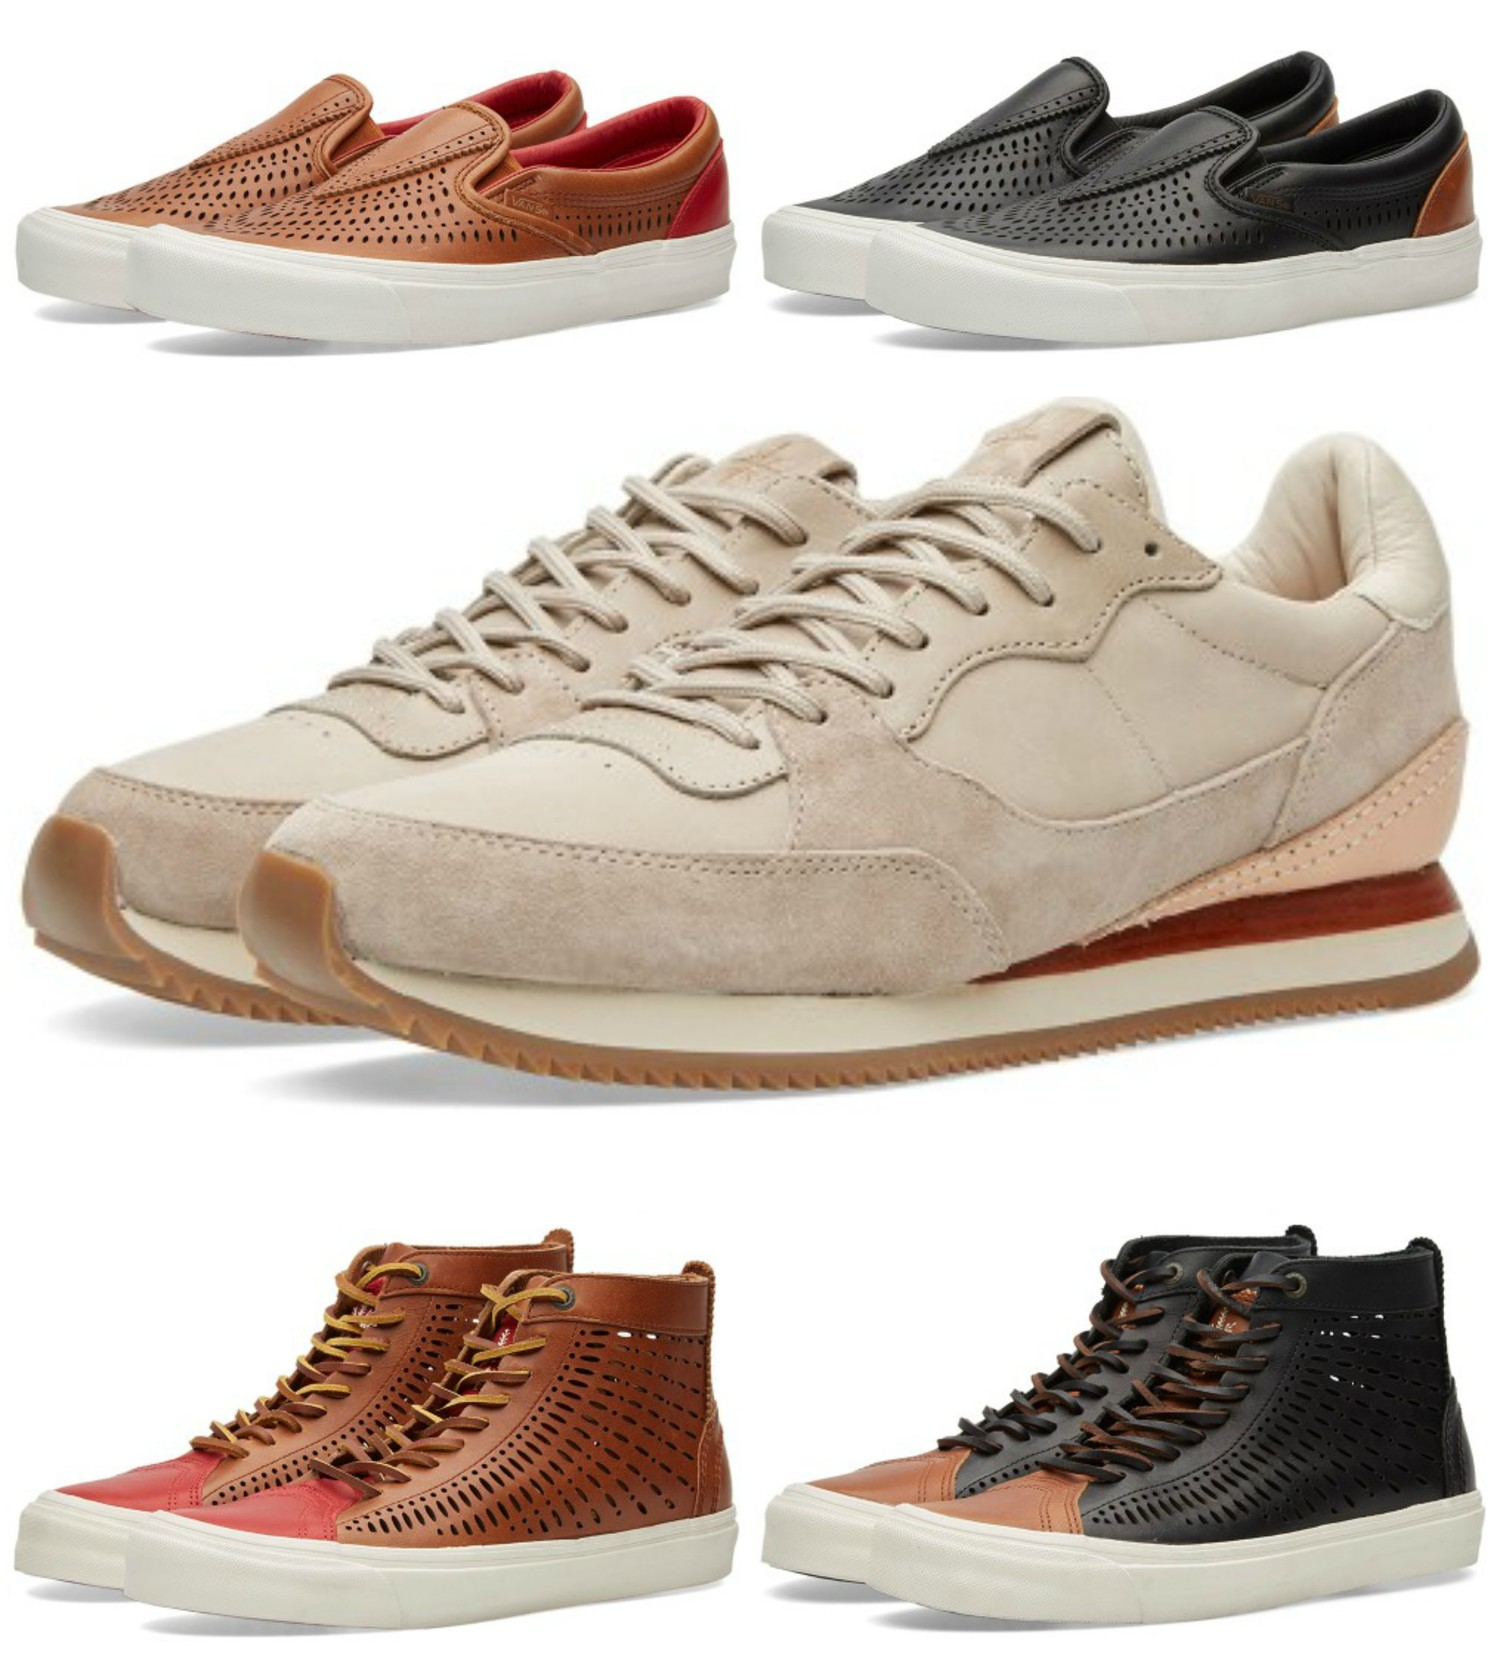 bb4823204505fd Now Available  Taka Hayashi x Vans Vault Collection — Sneaker Shouts